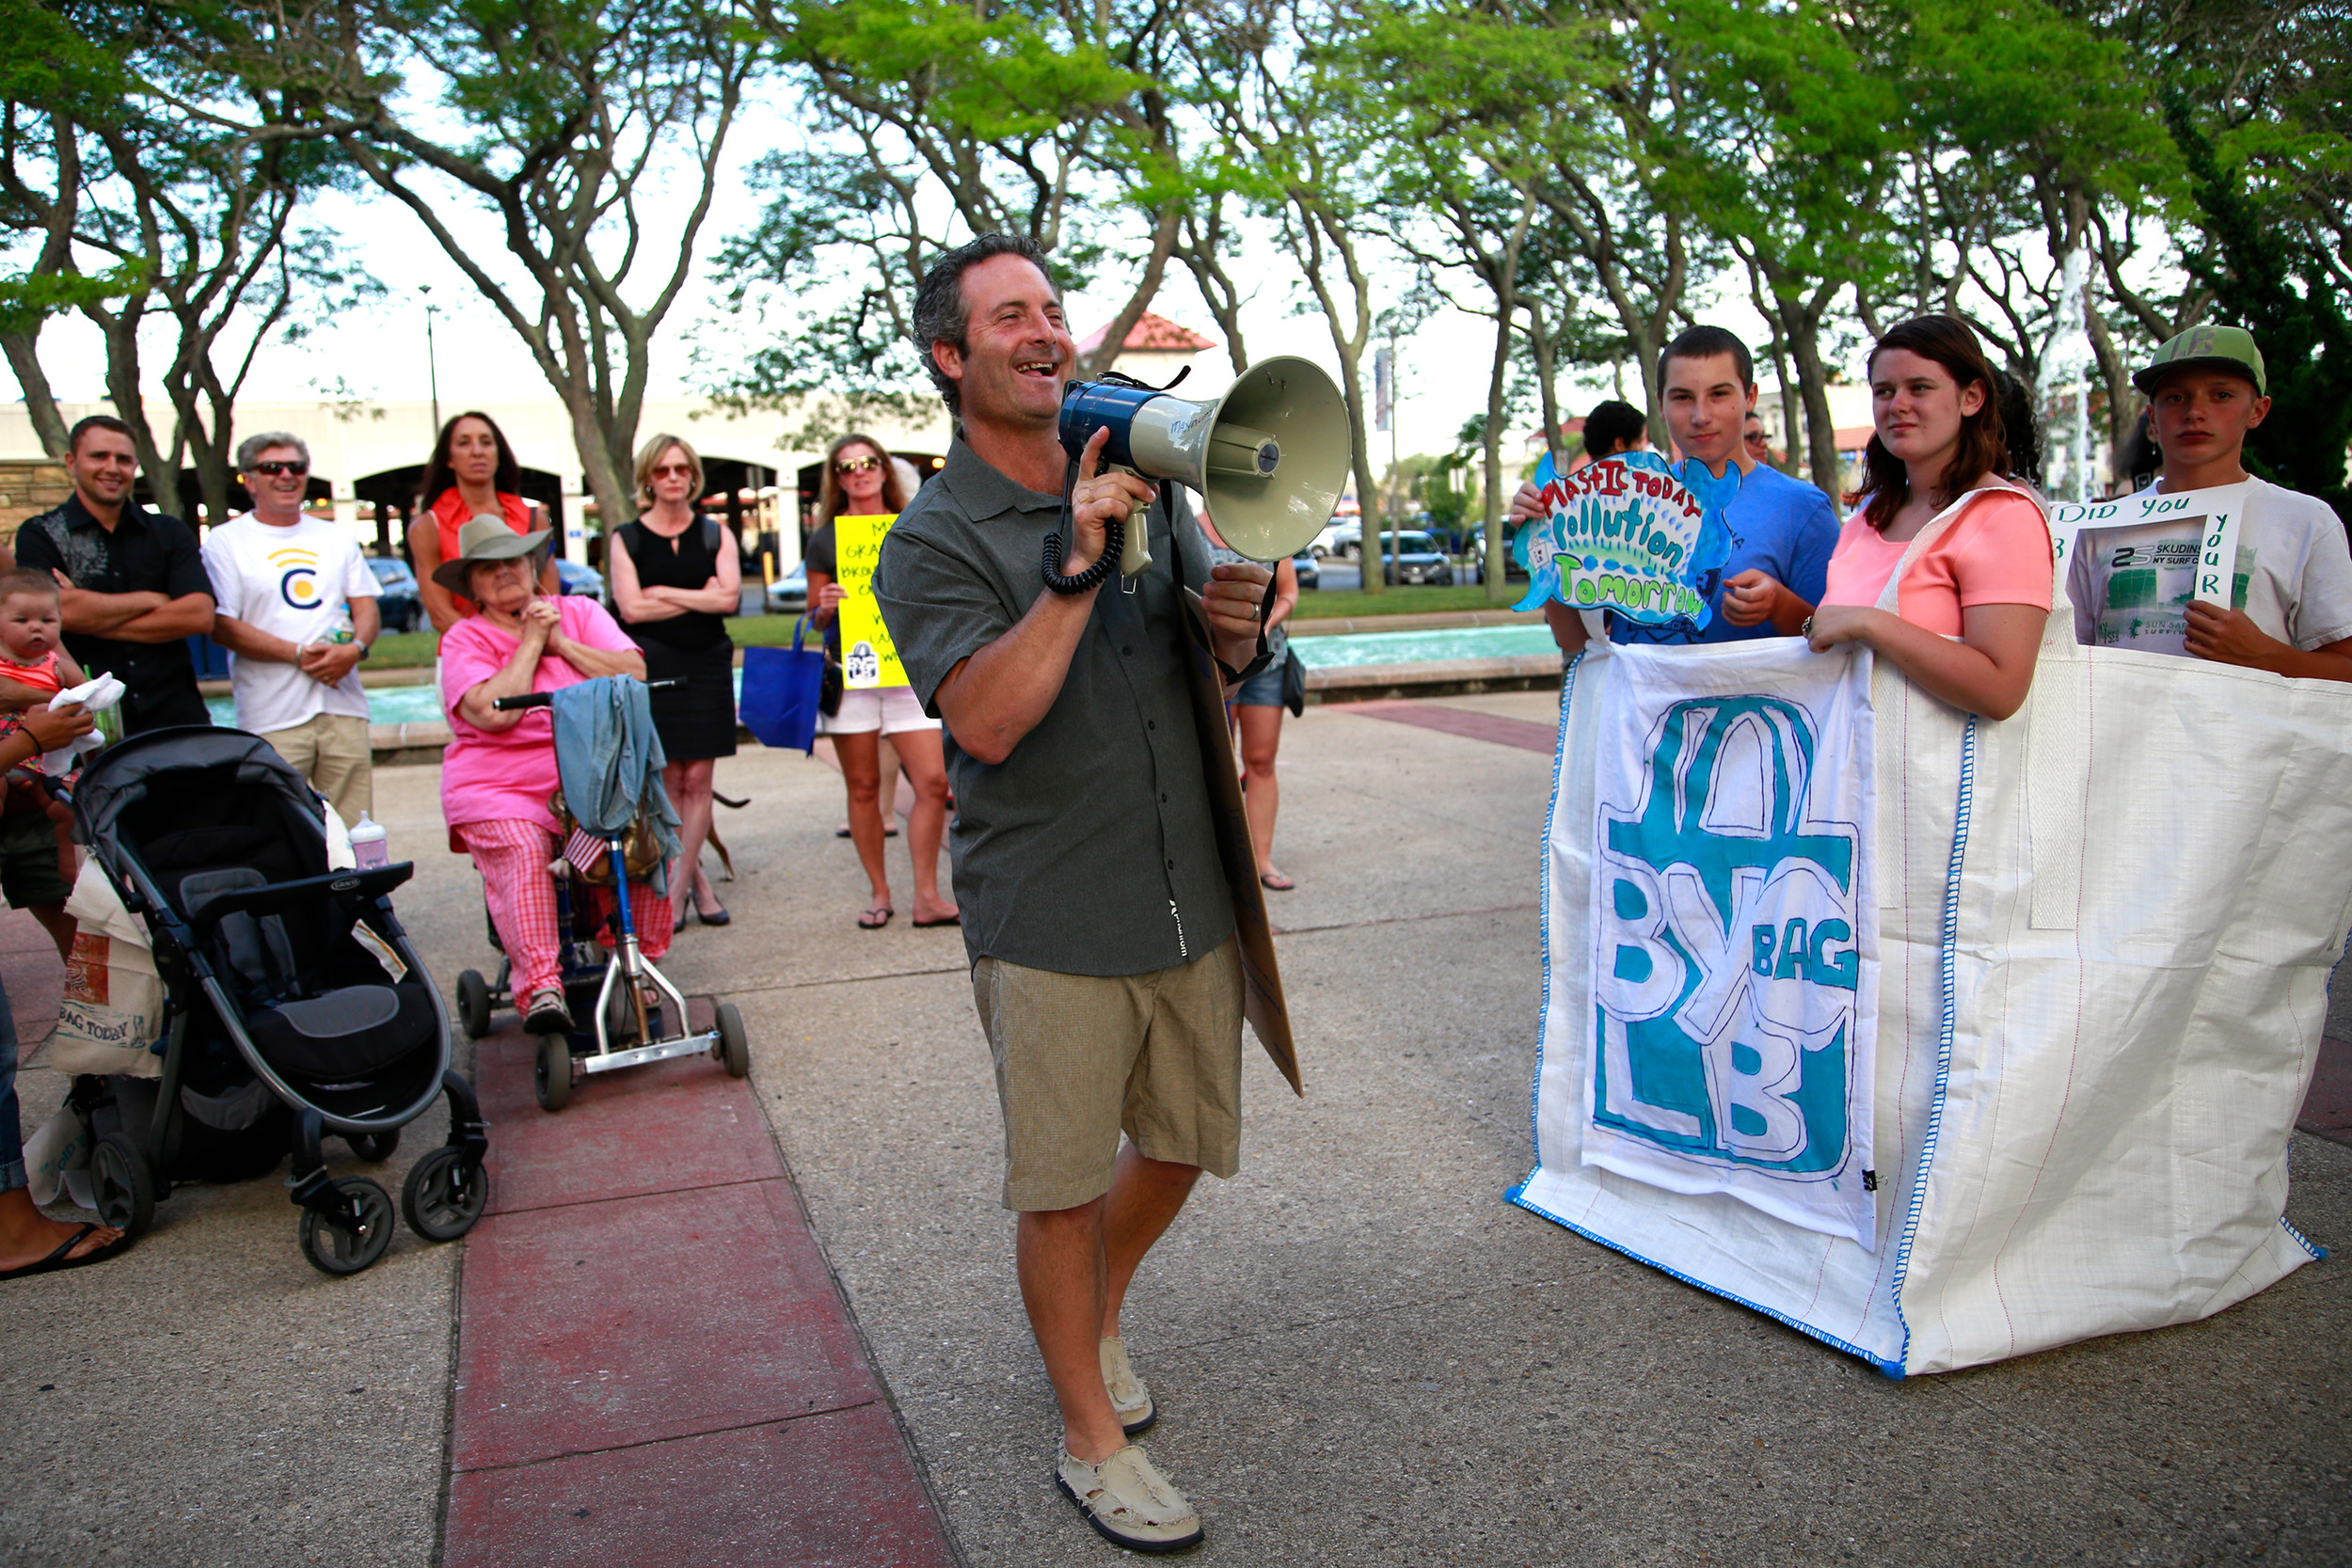 George Povall, of All Our Energy, led the rally, which called for a city ban of single-use plastic bags.